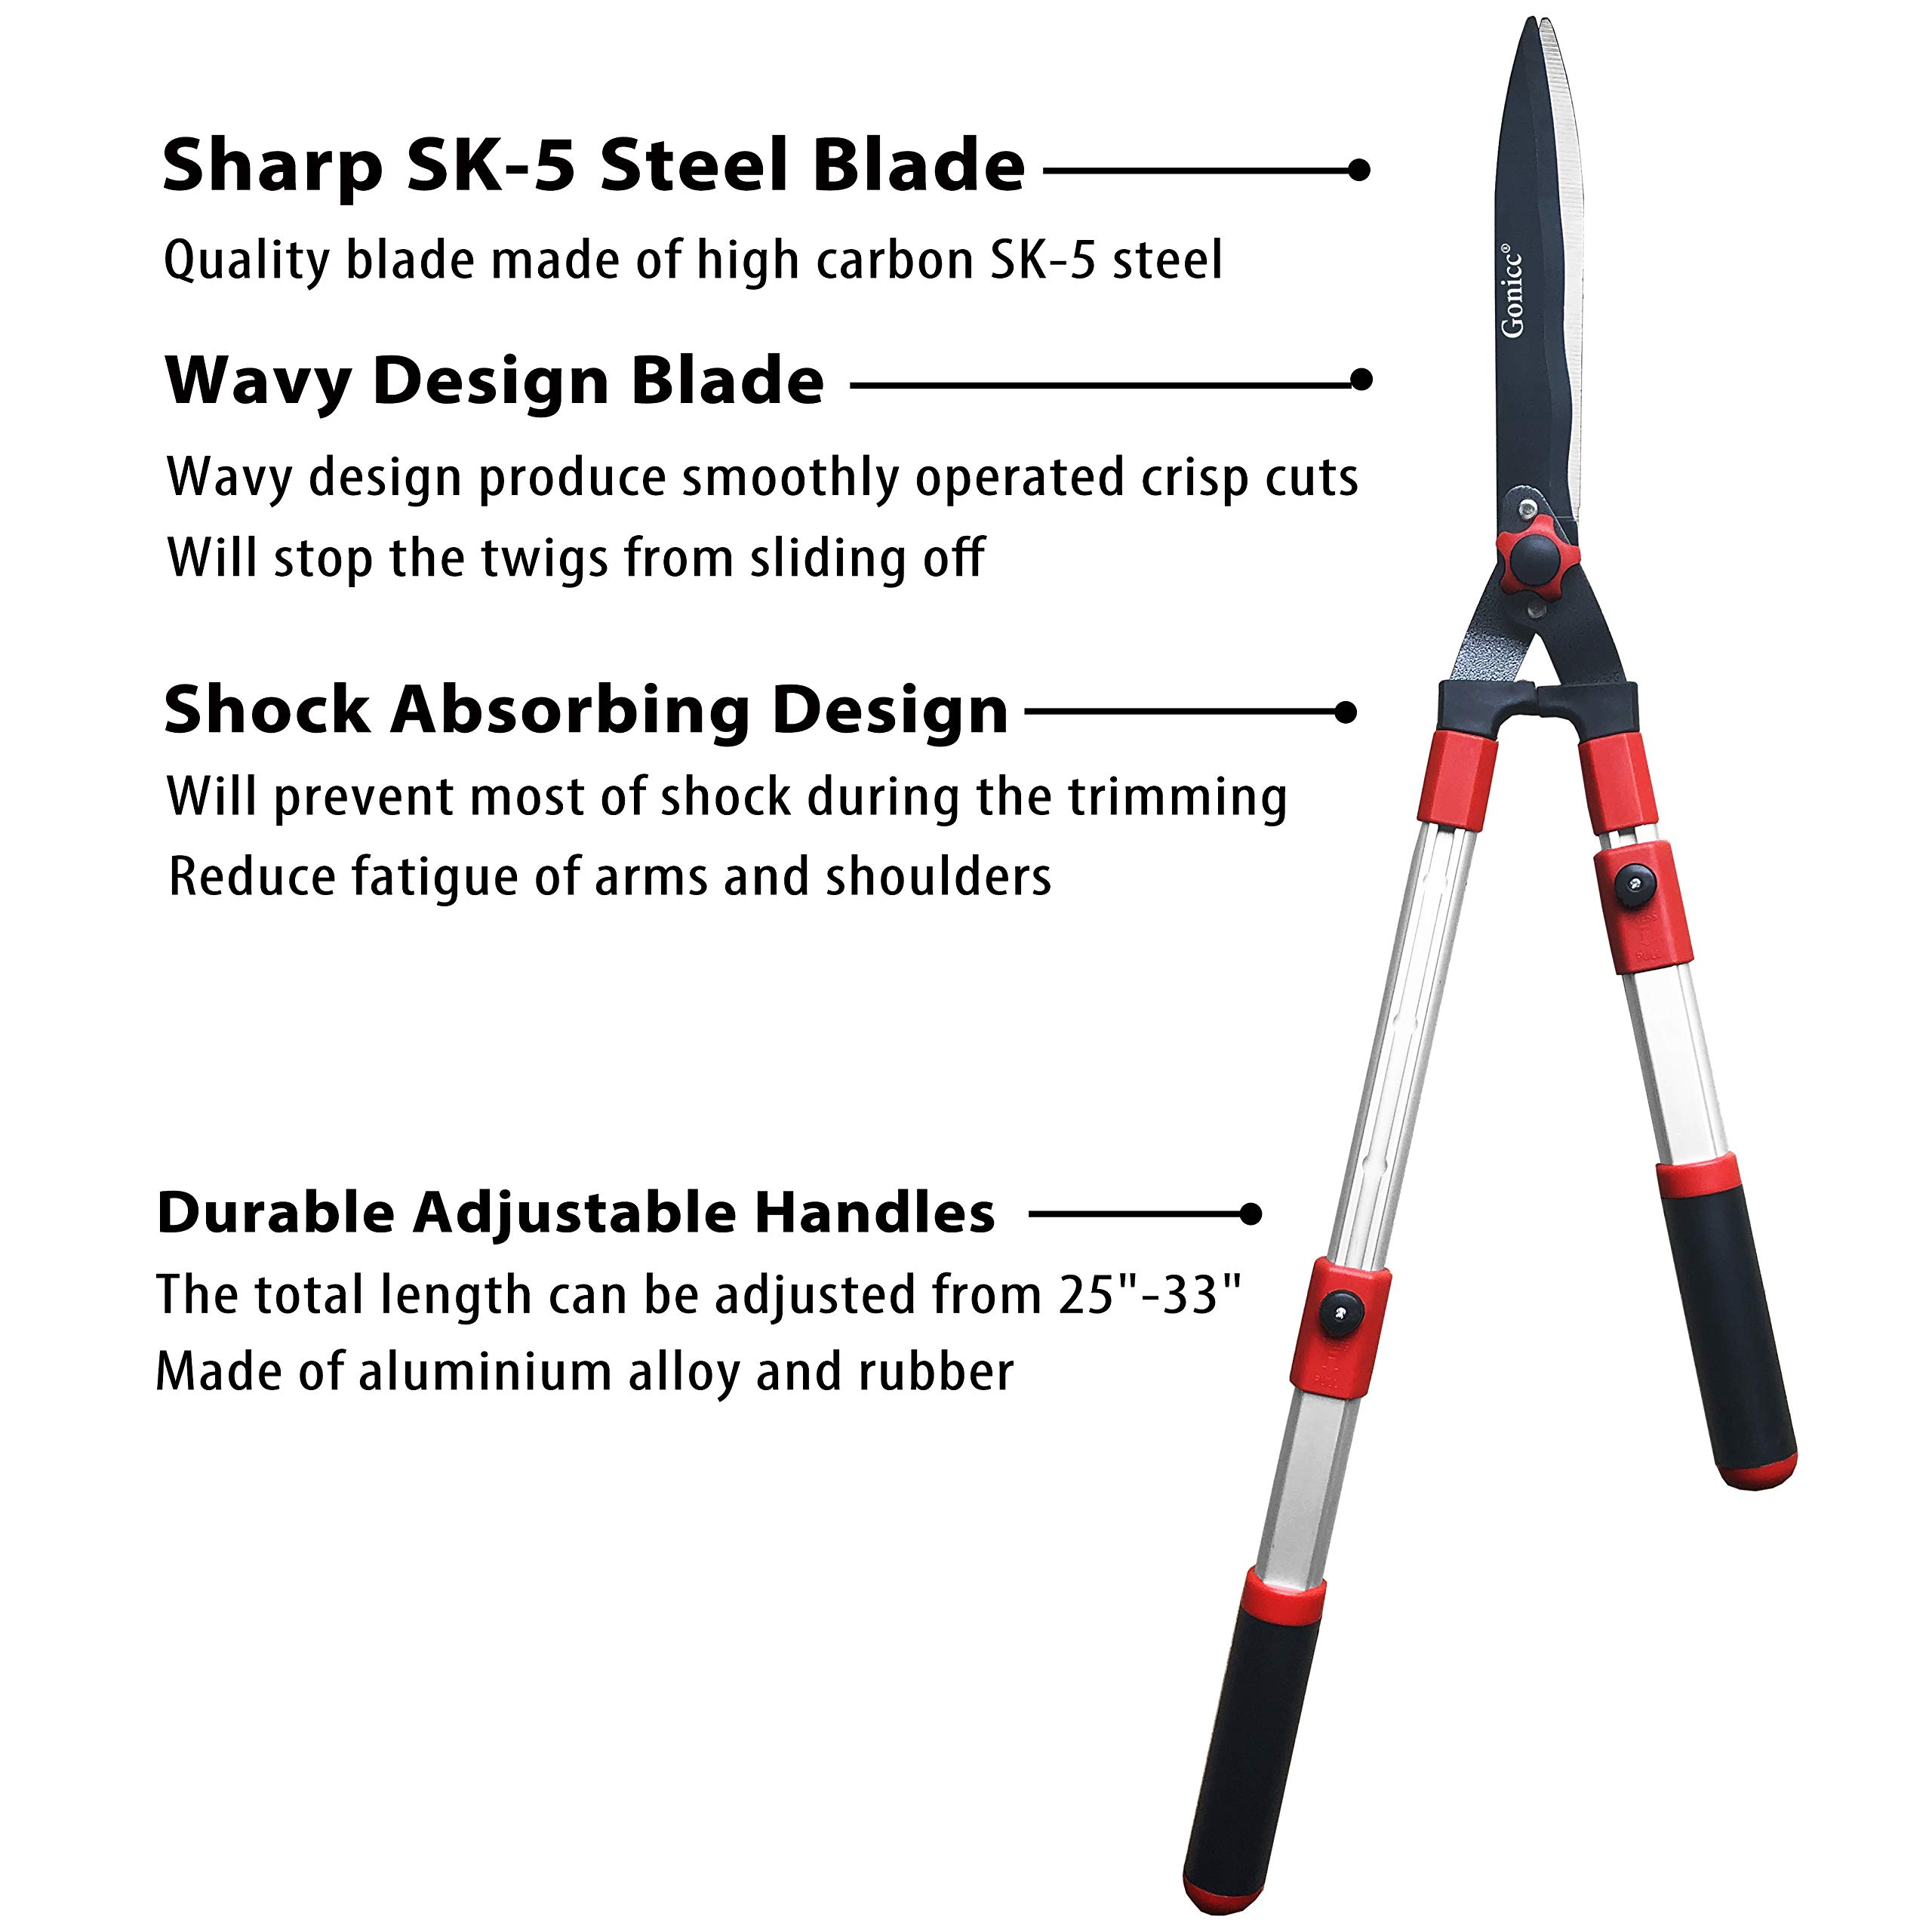 gonicc Professional Adjustable 25''+ 8'' Hedge Shears. with Wavy SK-5 Steel Blade and Shock Absorbing Desig, Adjustable Blade Pressure, Garden Pruning Hand Hedge Trimmers Clippers Shears by gonicc (Image #3)